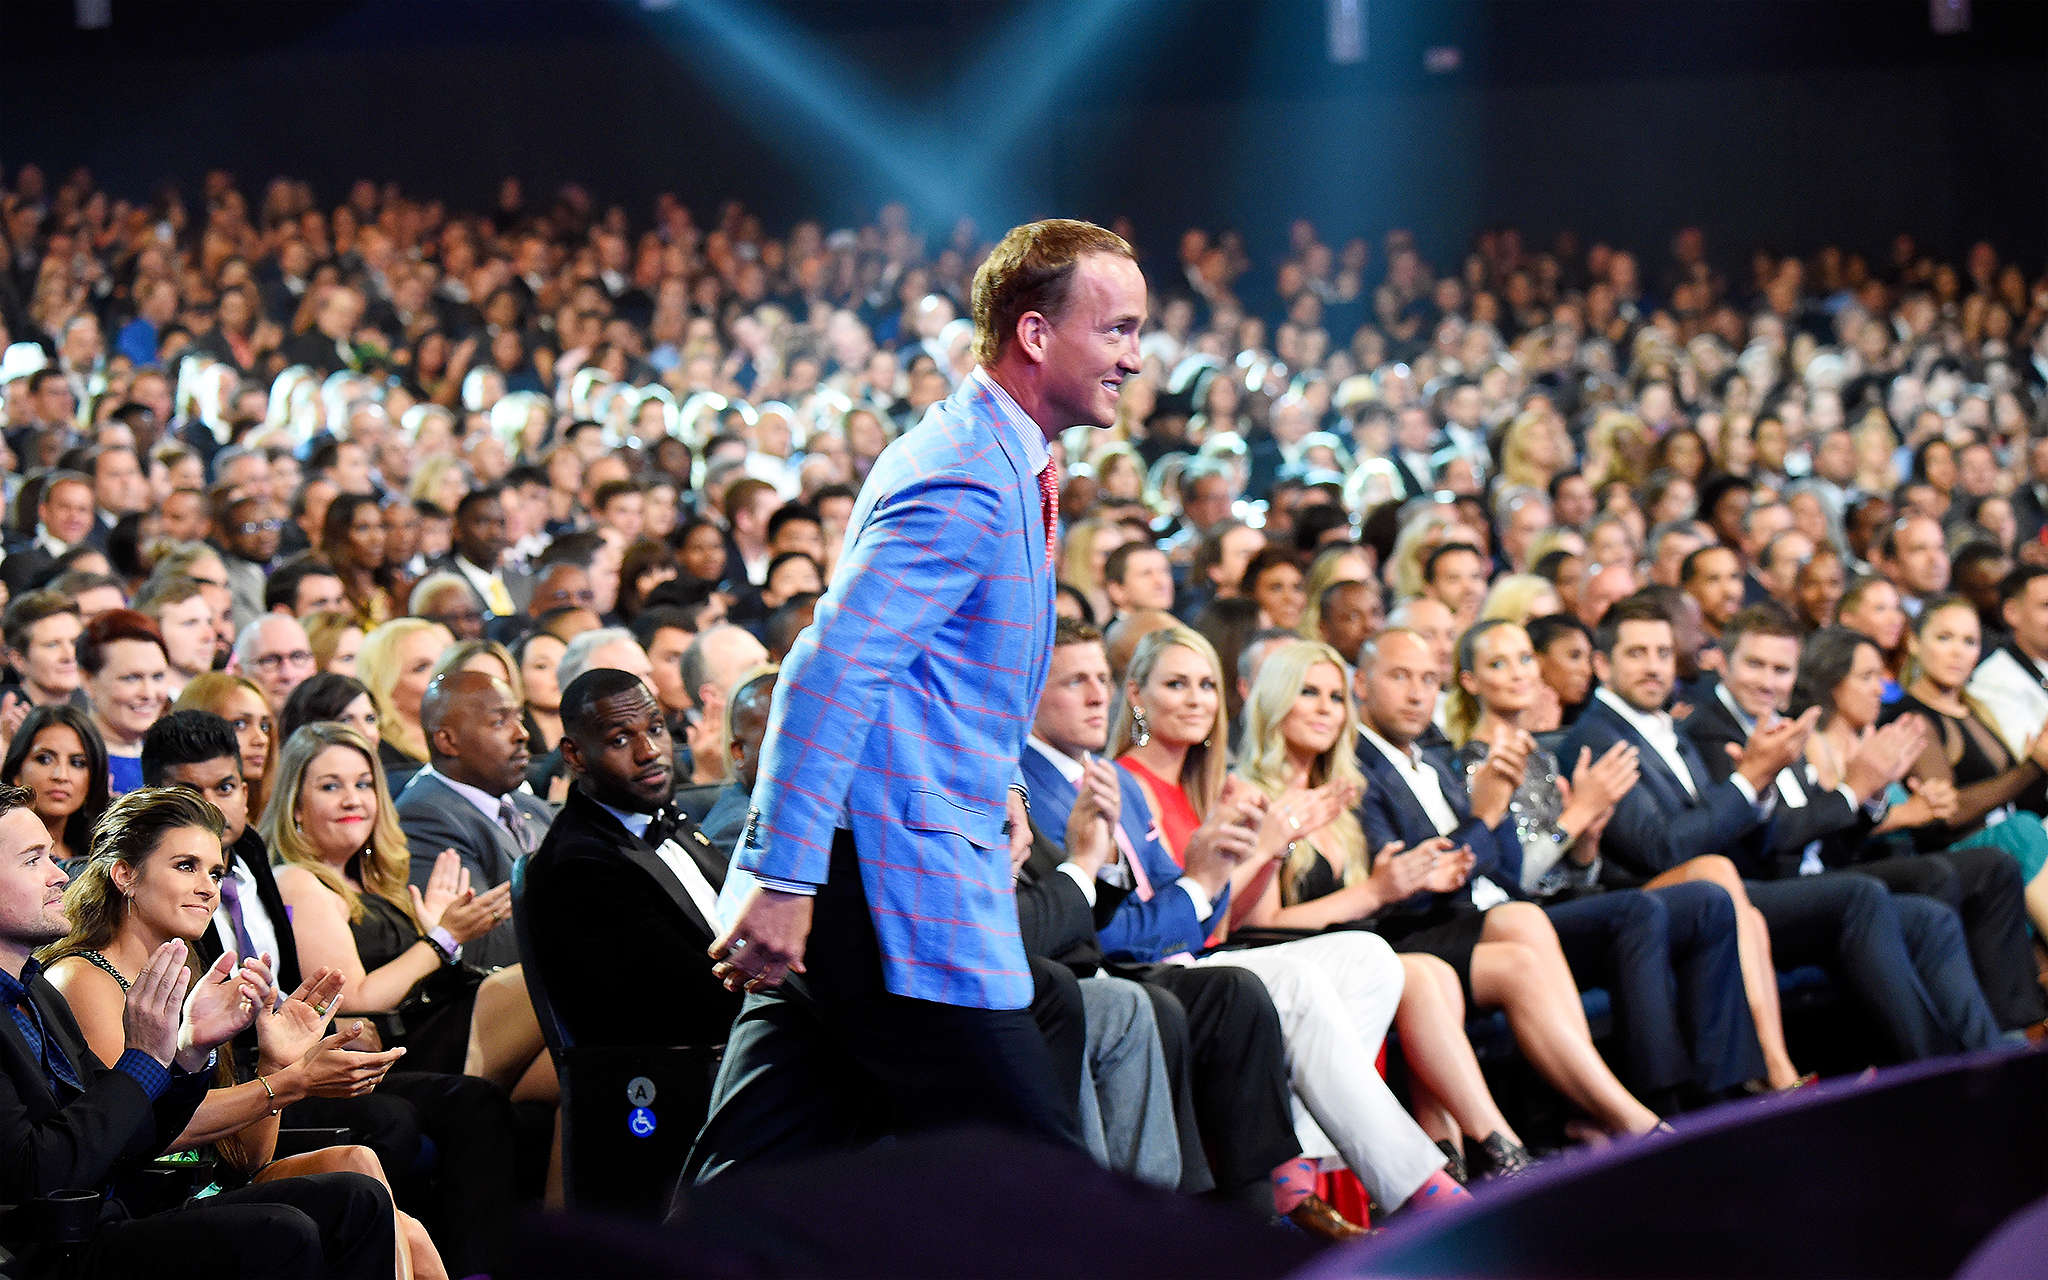 Forward progress - Scenes from the 2015 ESPYS - ESPN